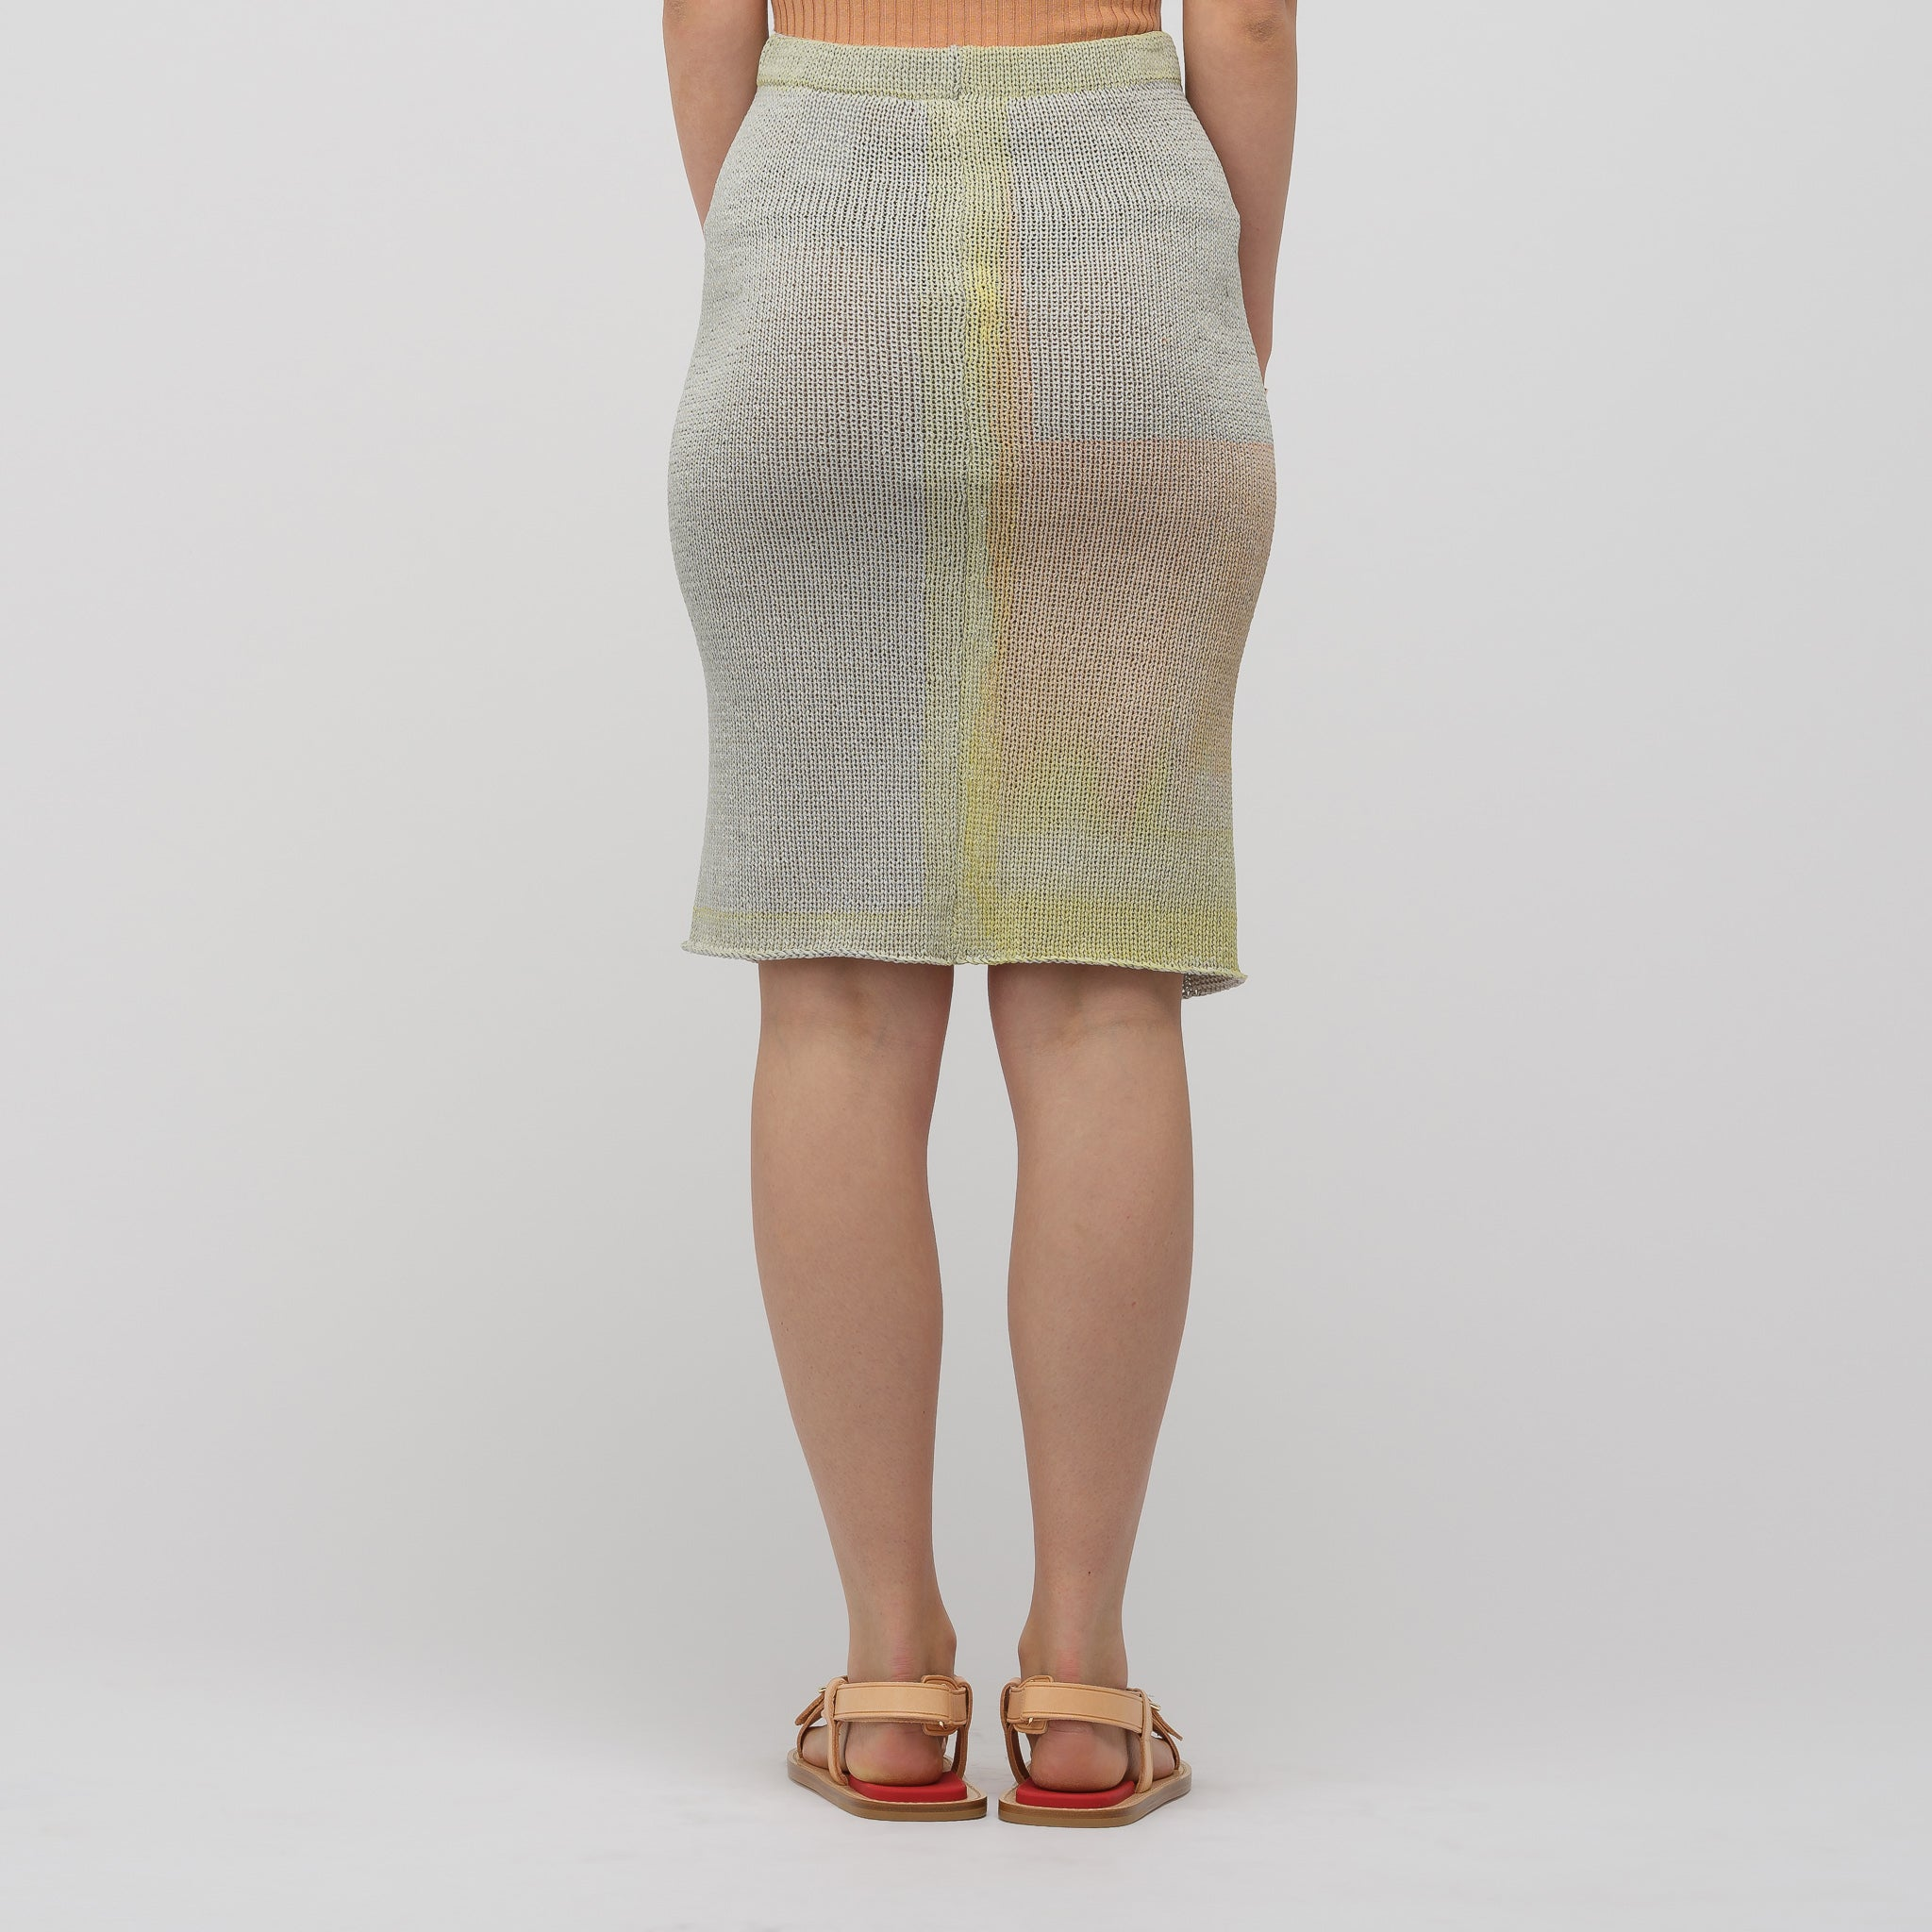 Painted Knit Skirt in Paper Mache Grey